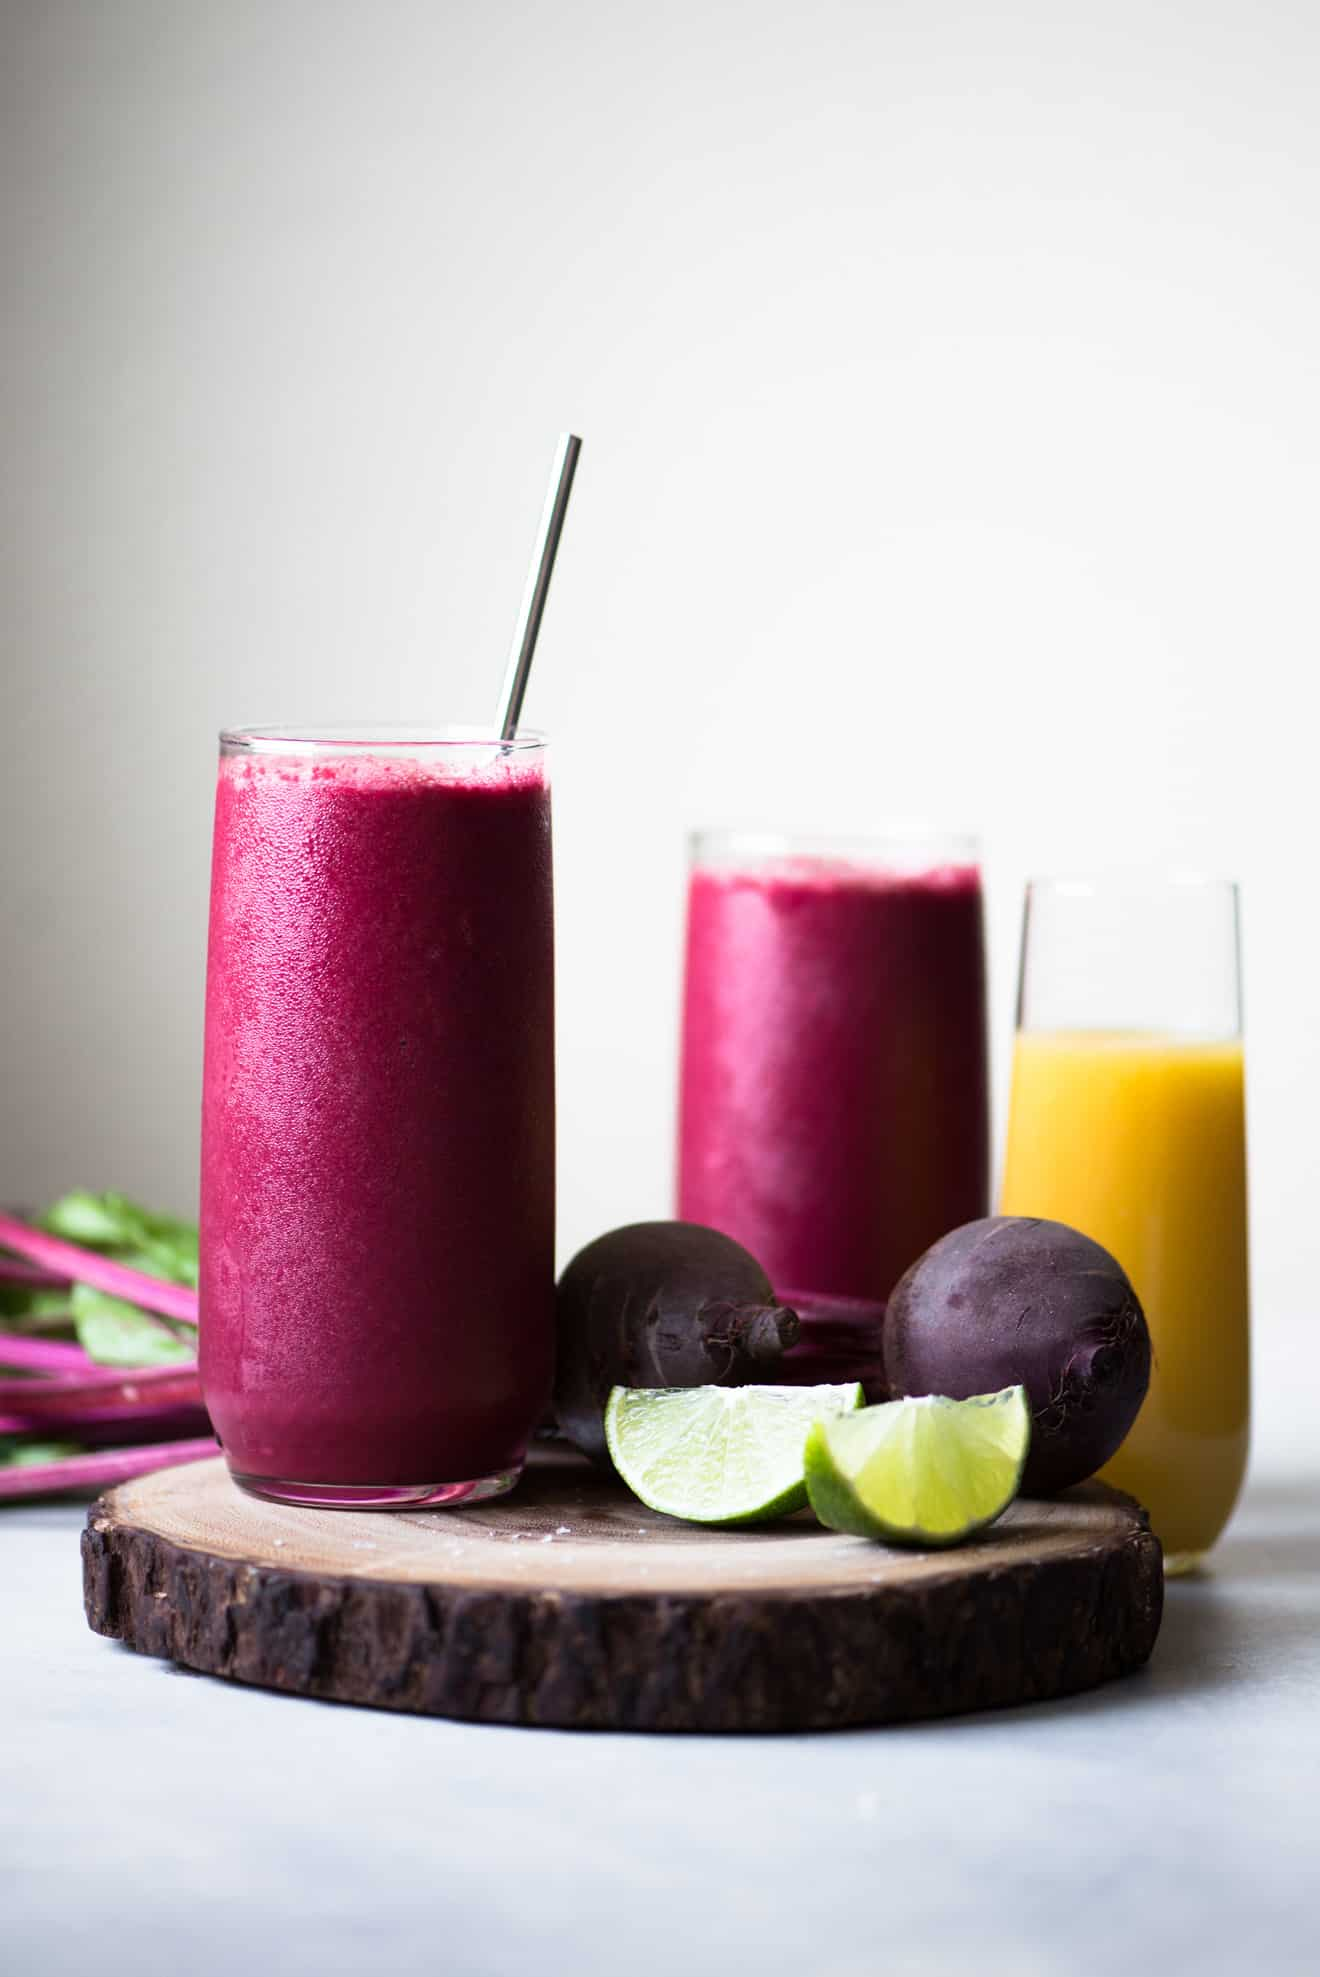 Red Beet Smoothie - a tasty smoothie made with beets and beet greens! Brighten up your day with this extra shot of energy from vegetables!